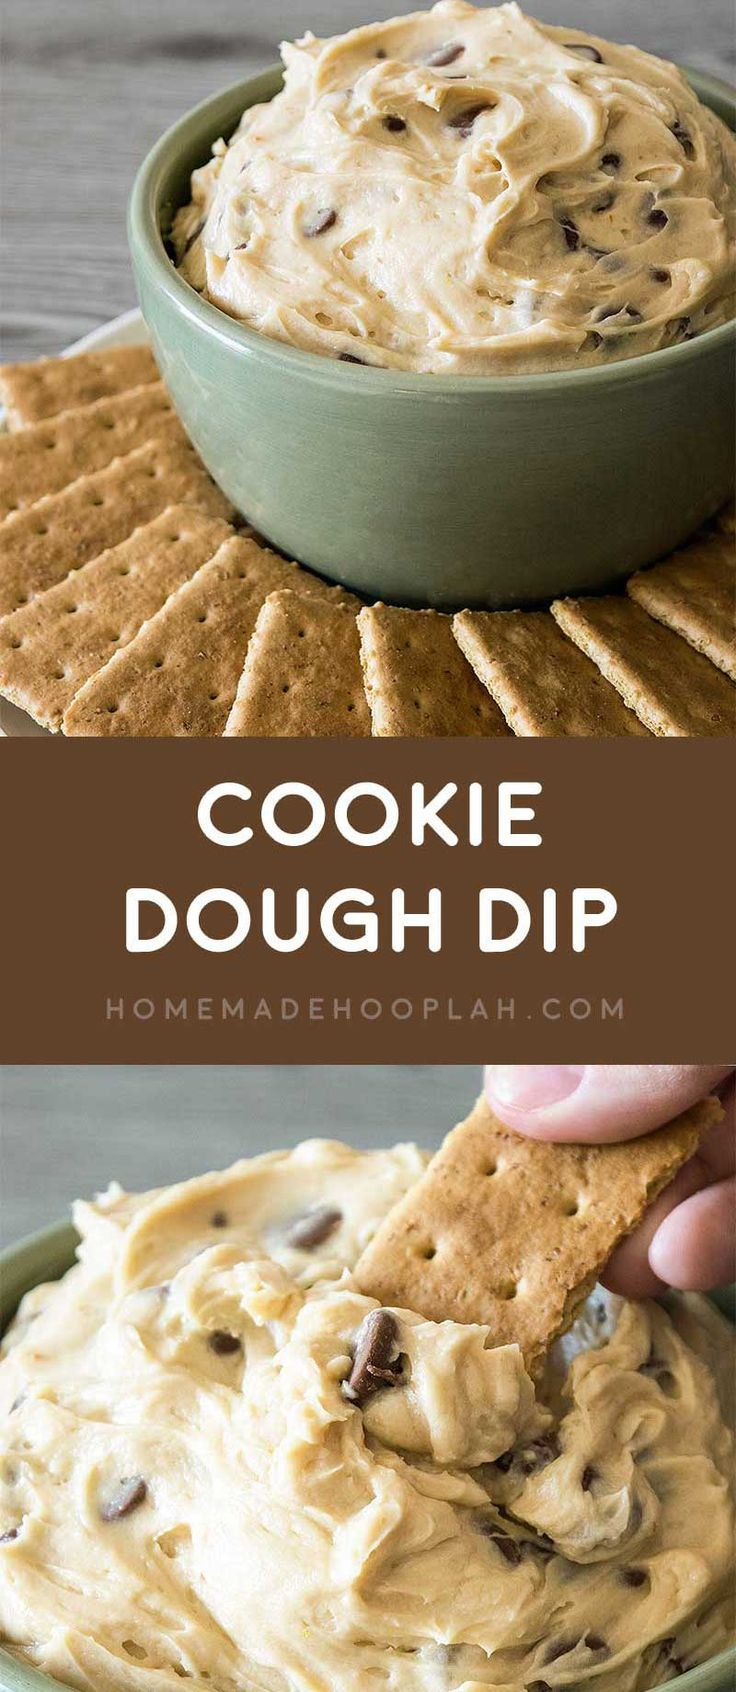 Cookie Dough Dip! Dazzle your guests by serving up dessert first with this ultra-creamy cookie dough dip with chocolate chips. It's also eggless and no bake!   HomemadeHooplah.com